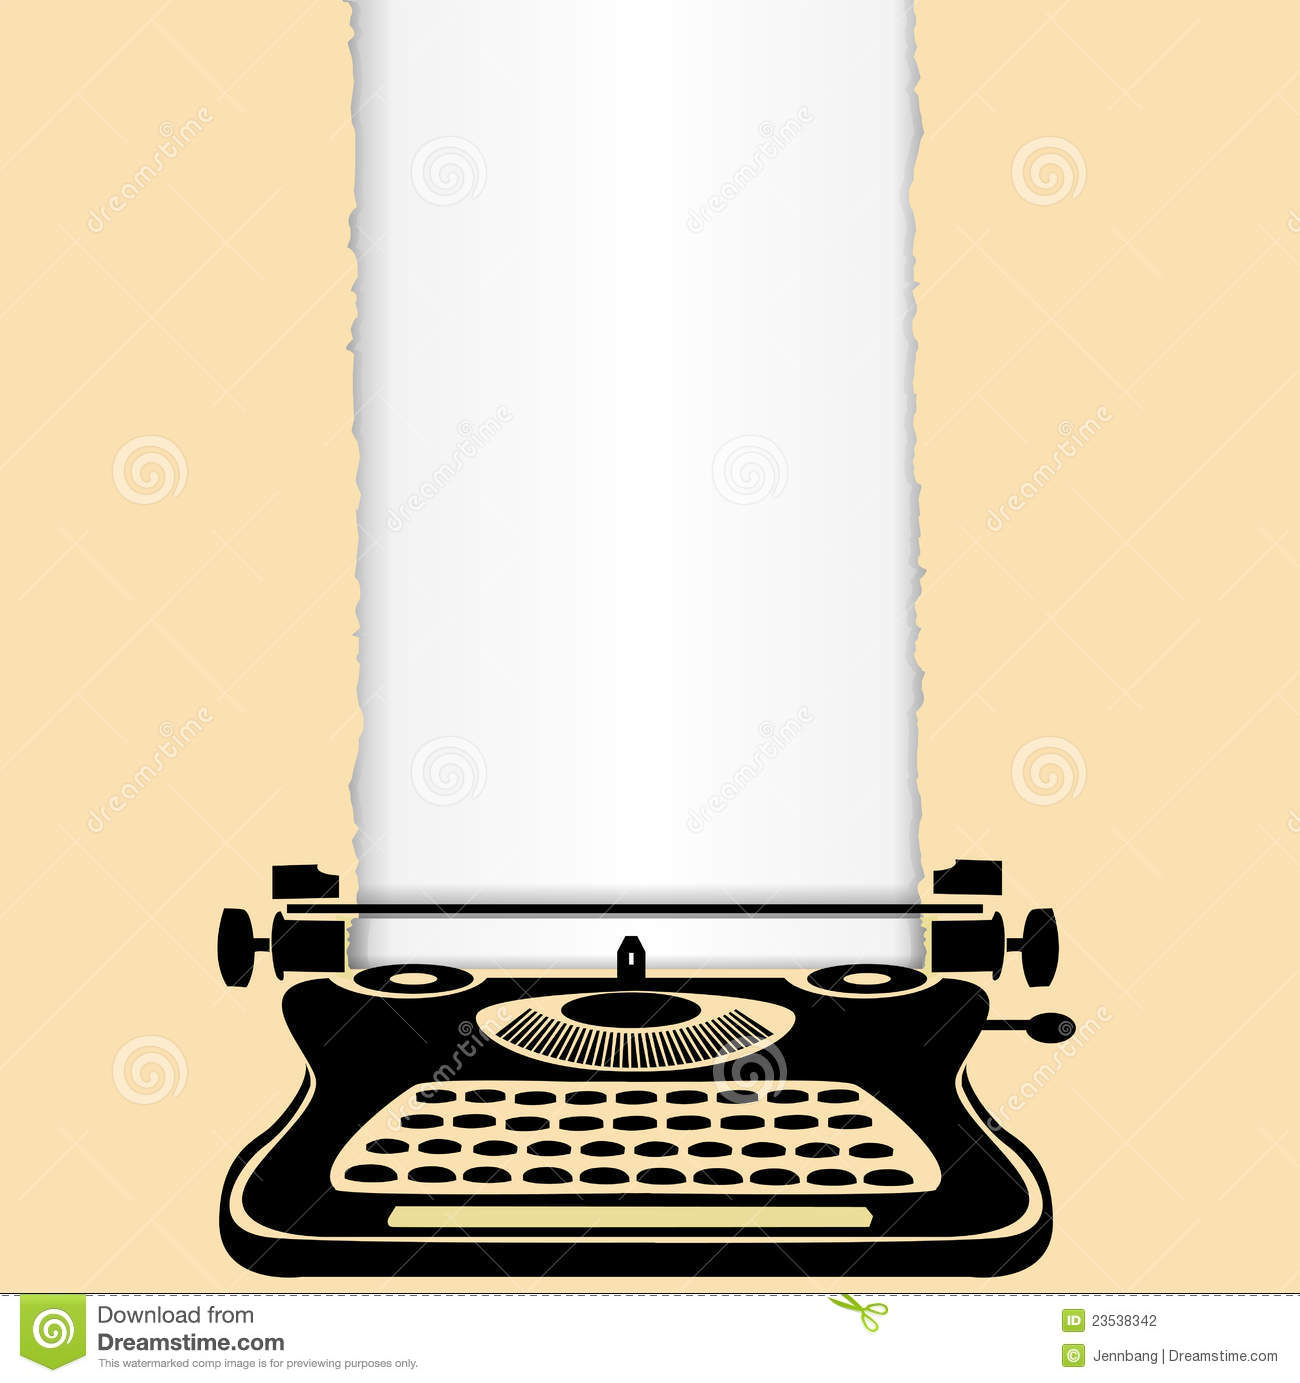 typewriter paper Download 7,317 old typewriter paper stock photos for free or amazingly low rates new users enjoy 60% off 72,696,255 stock photos online.